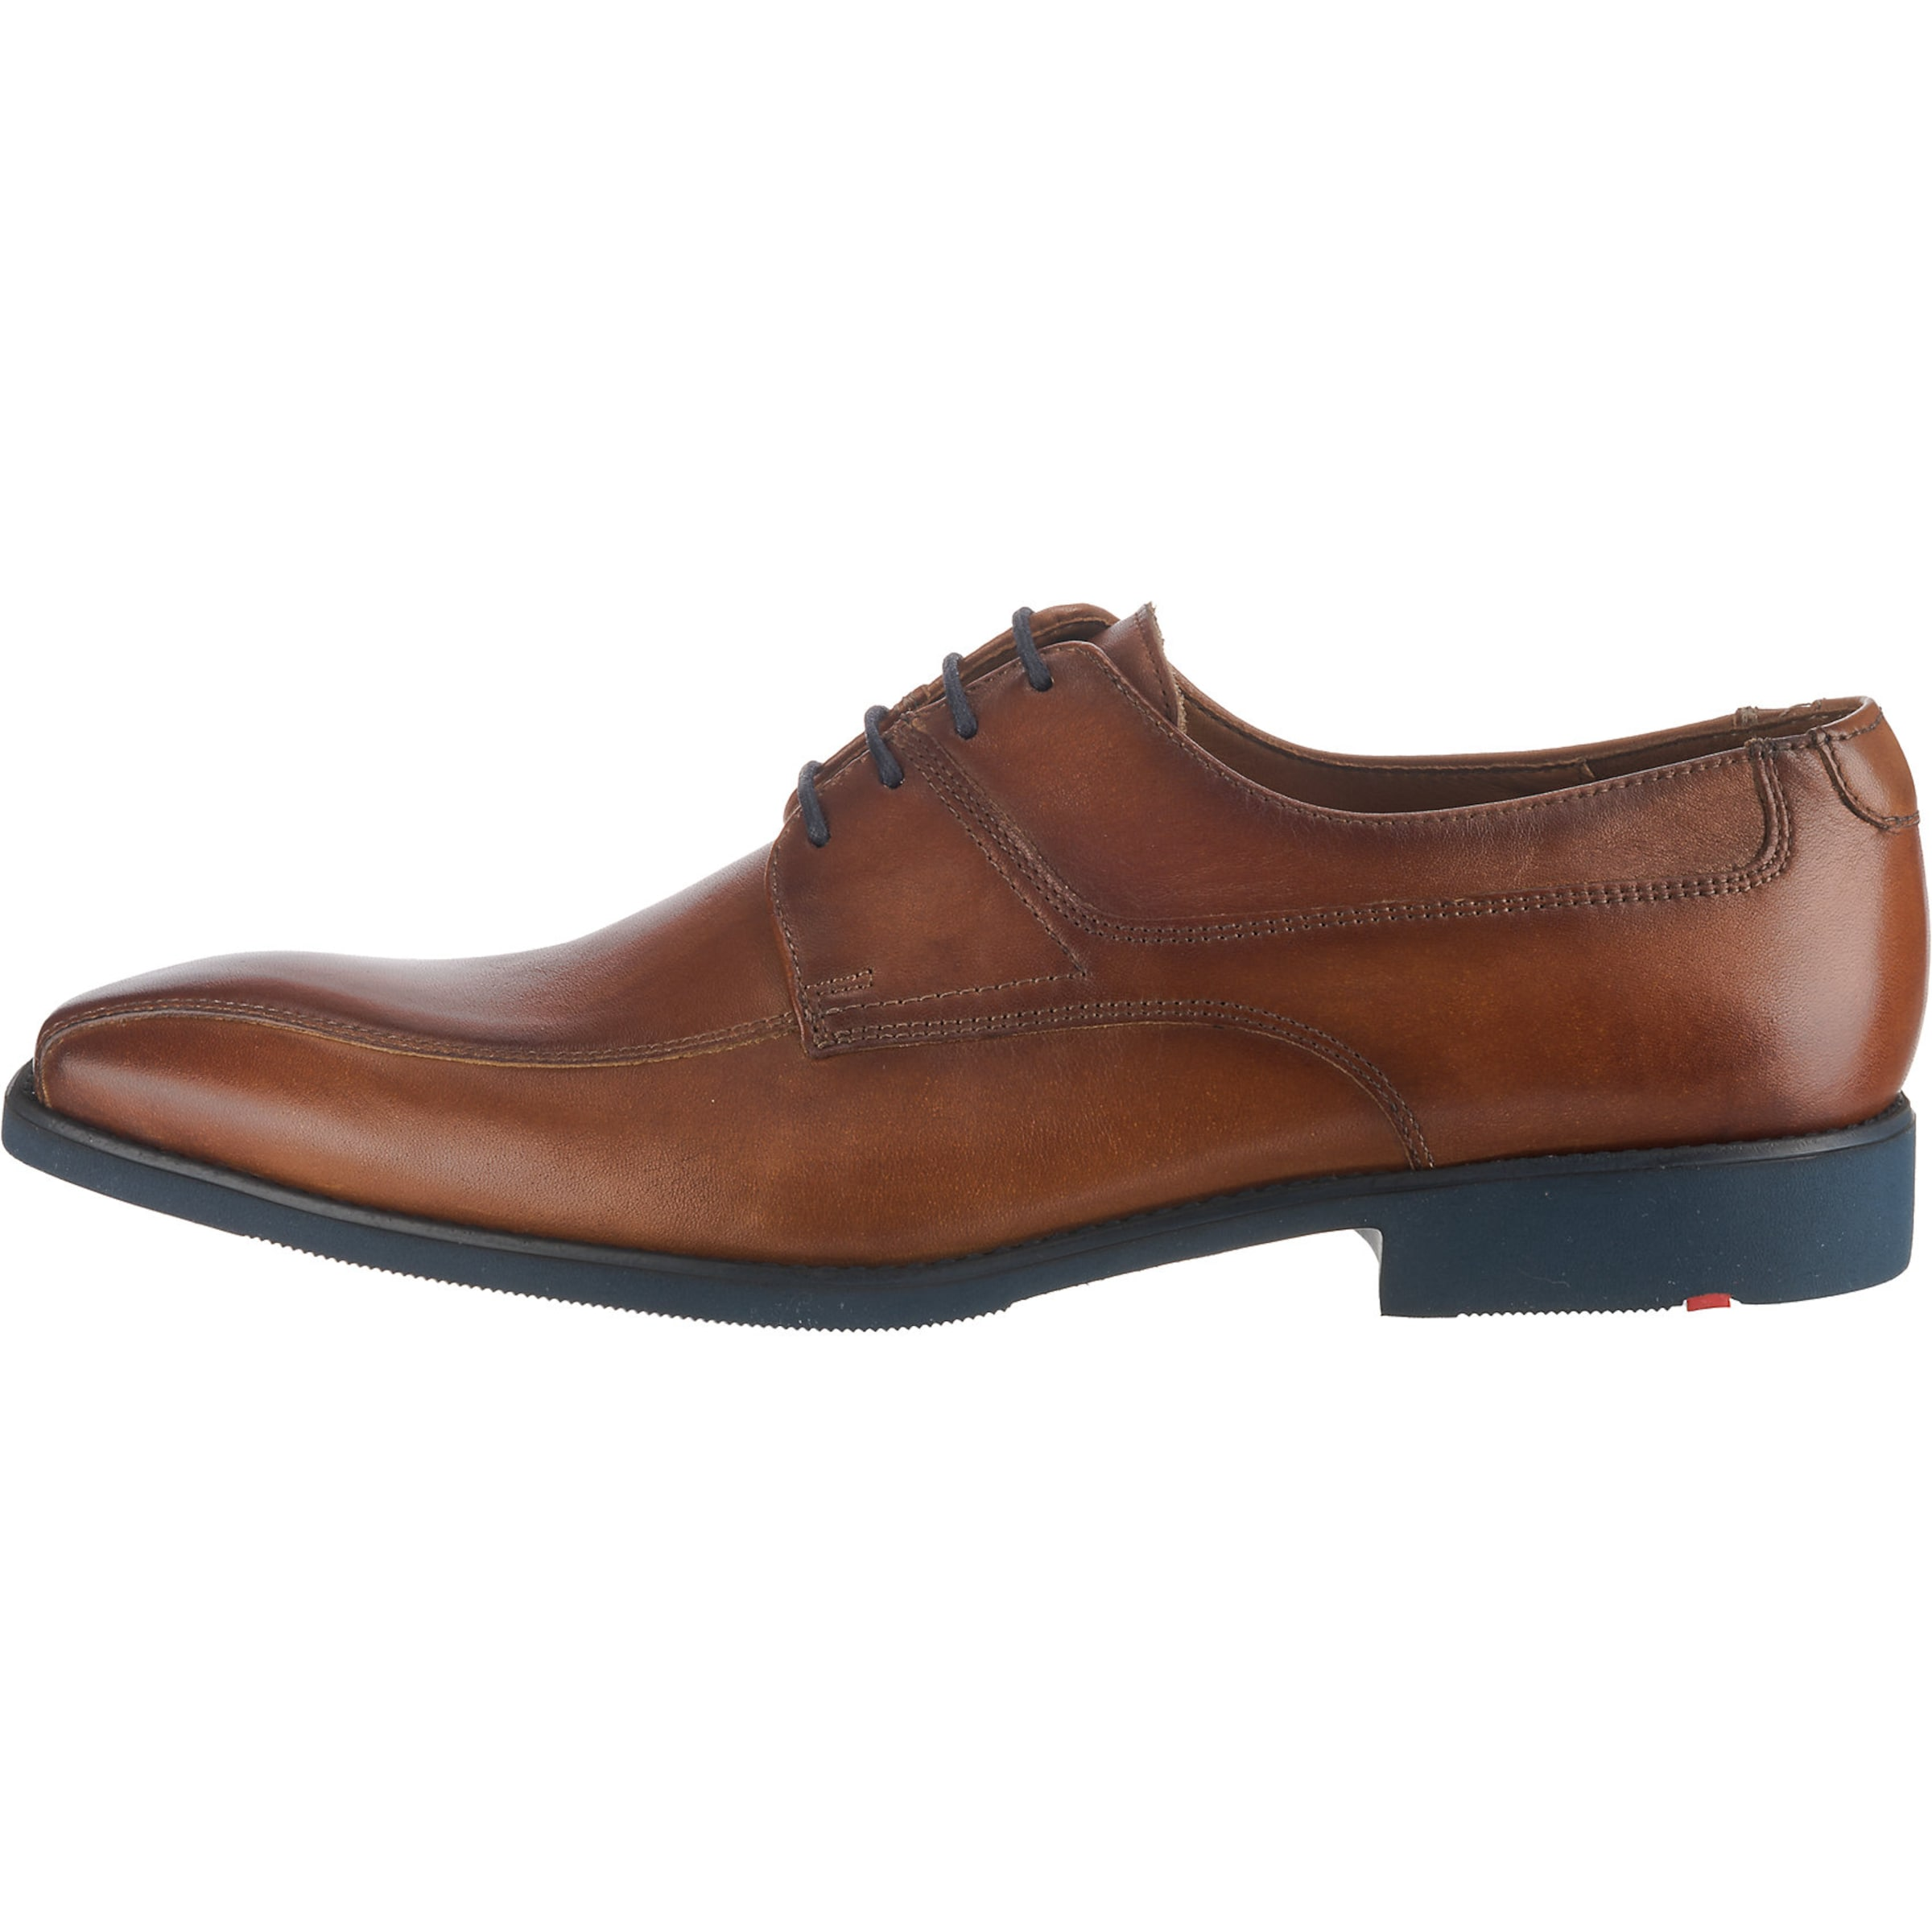 Businessschuhe In In Businessschuhe In Lloyd Businessschuhe Lloyd Rostbraun Rostbraun Lloyd Rostbraun Businessschuhe Lloyd vYbgyf67